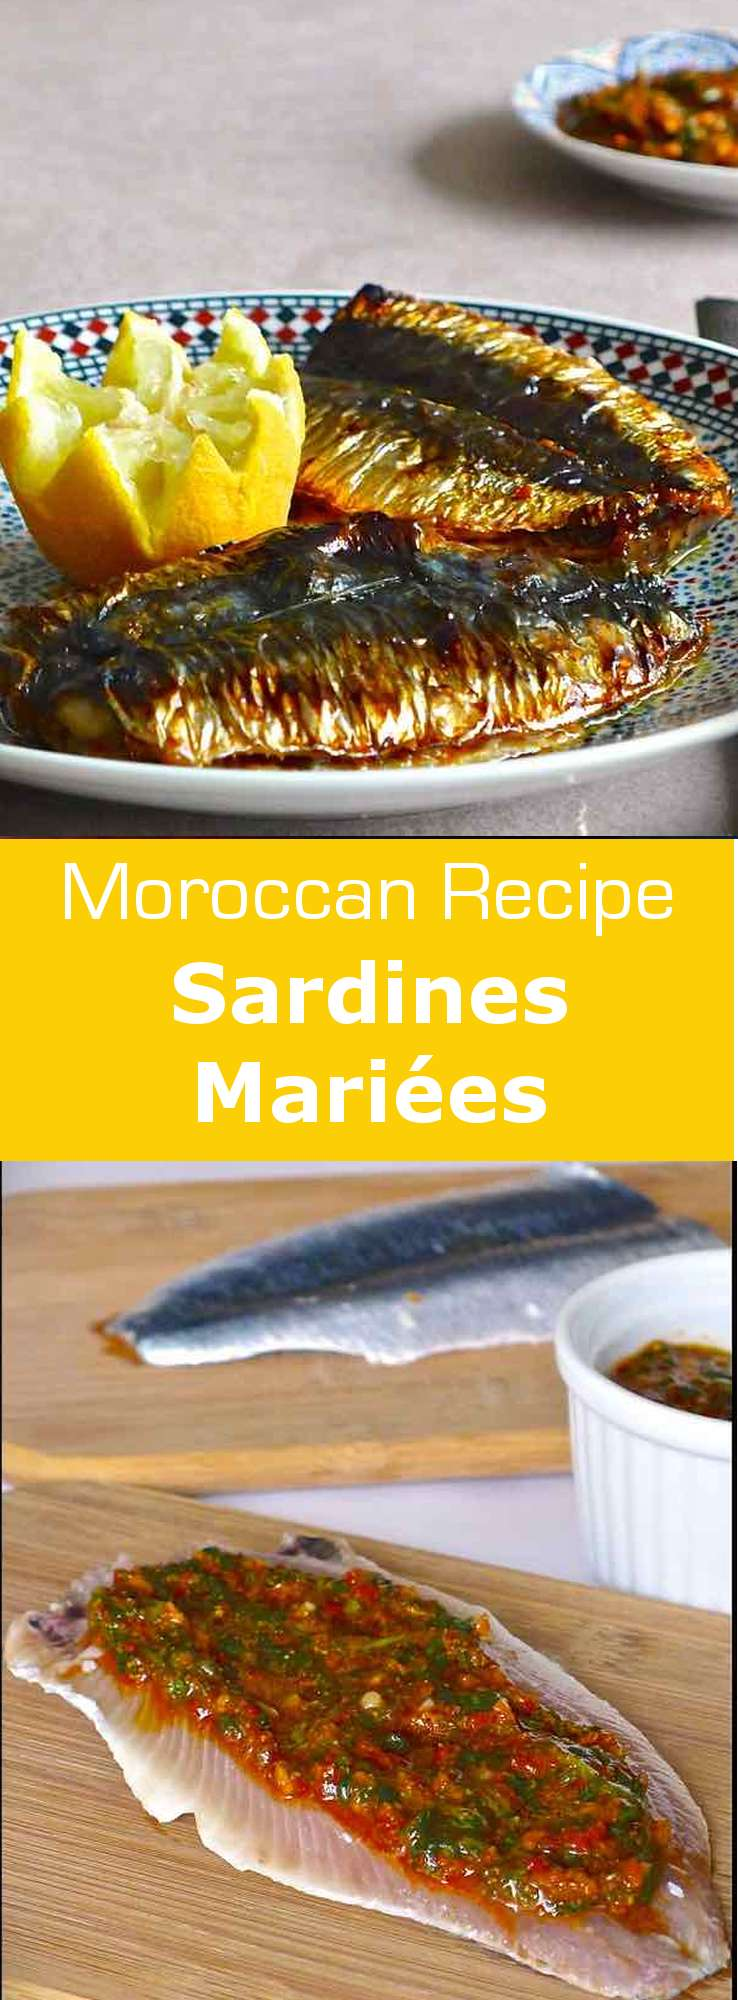 Sardines mariées (married sardines) are stuffed with chermoula, a marinade that is as much part of the Moroccan cooking heritage as couscous. #Morocco #fish #196flavors